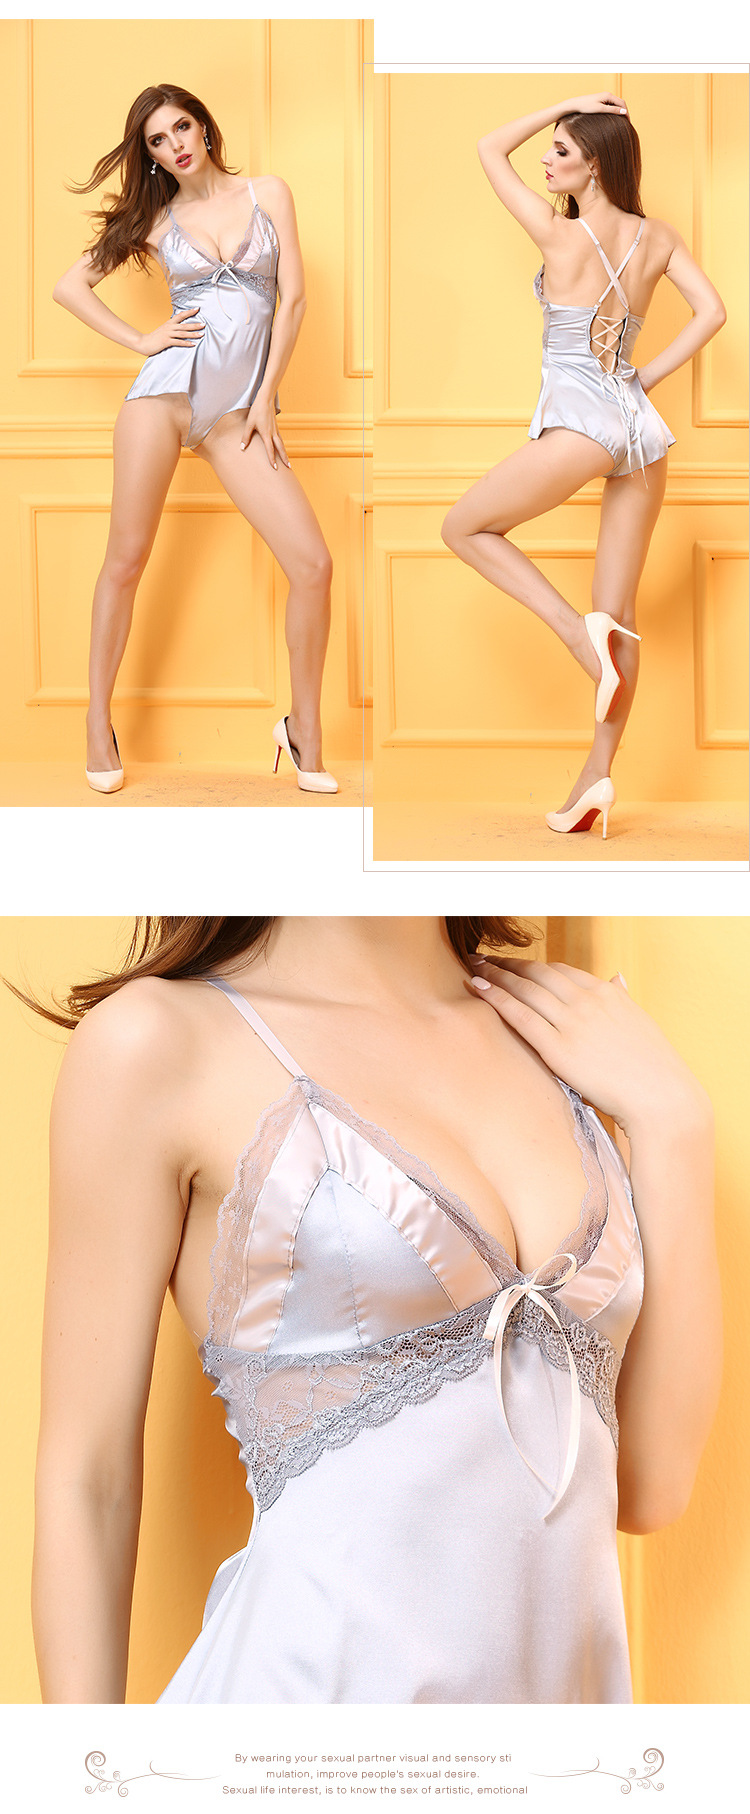 NEW 2017 High quality Sexy Women Bodycon Lingerie Hot Sleepwear Ladies Minidress Intimate Slips Lace slips